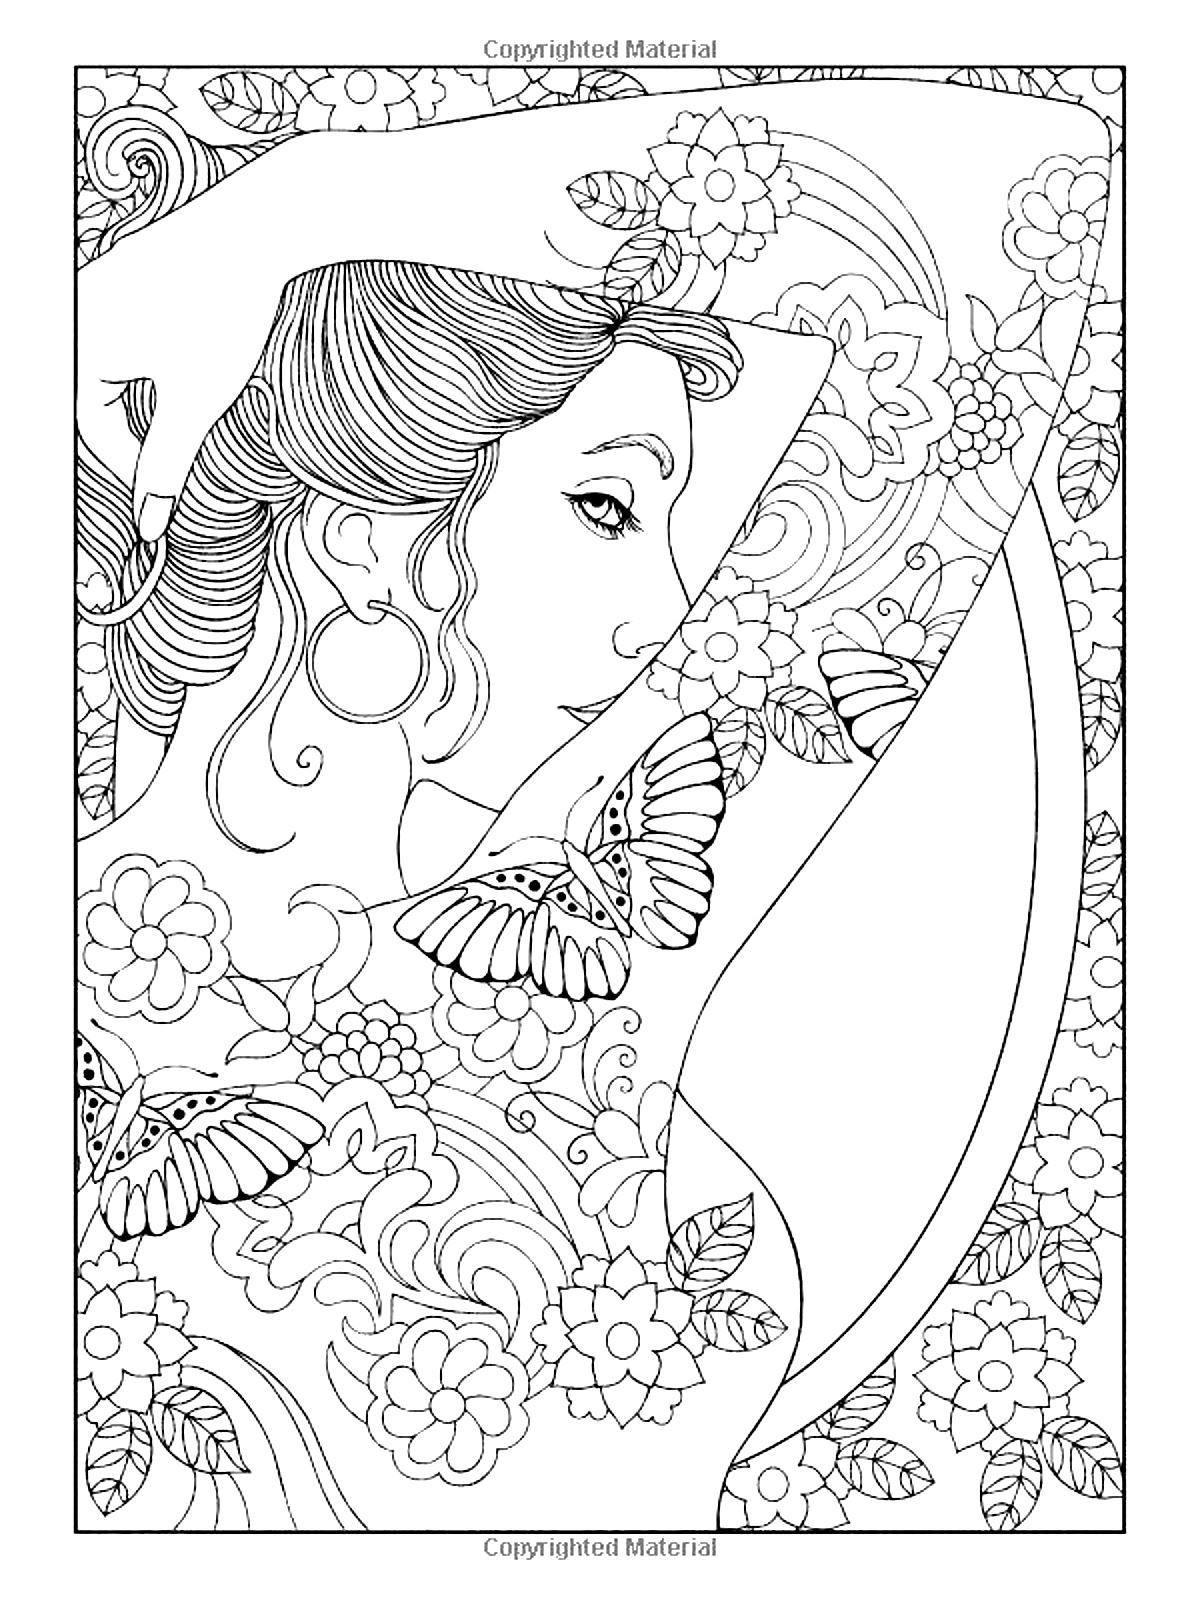 Shoulder Tattooed Woman Tattoos Coloring Pages For Adults Just